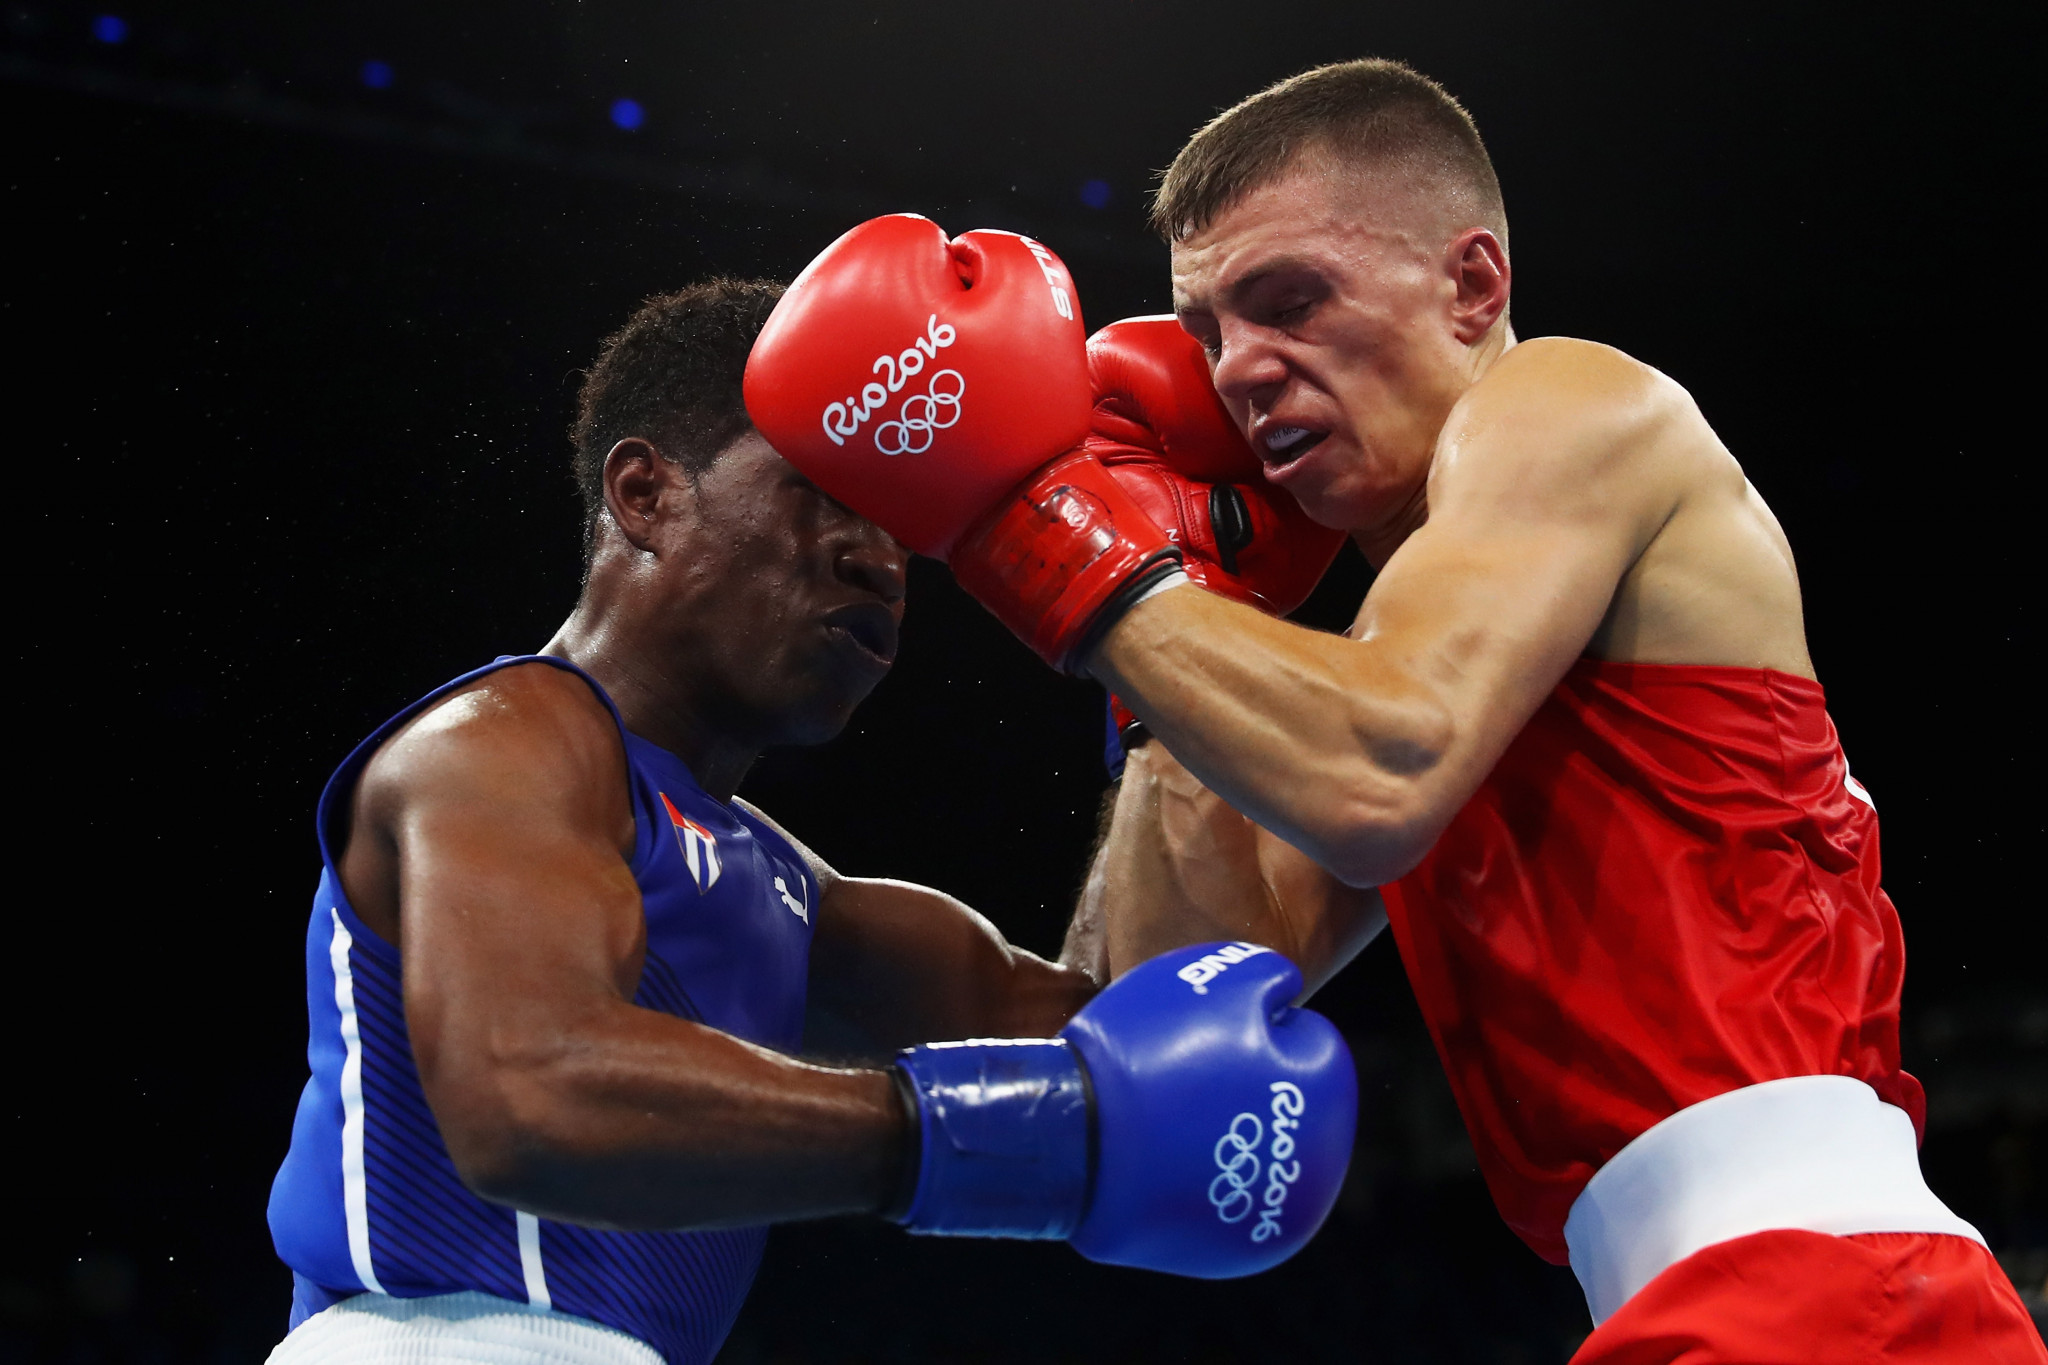 International Olympic Committee warns boxing body to resolve 'grave' issues